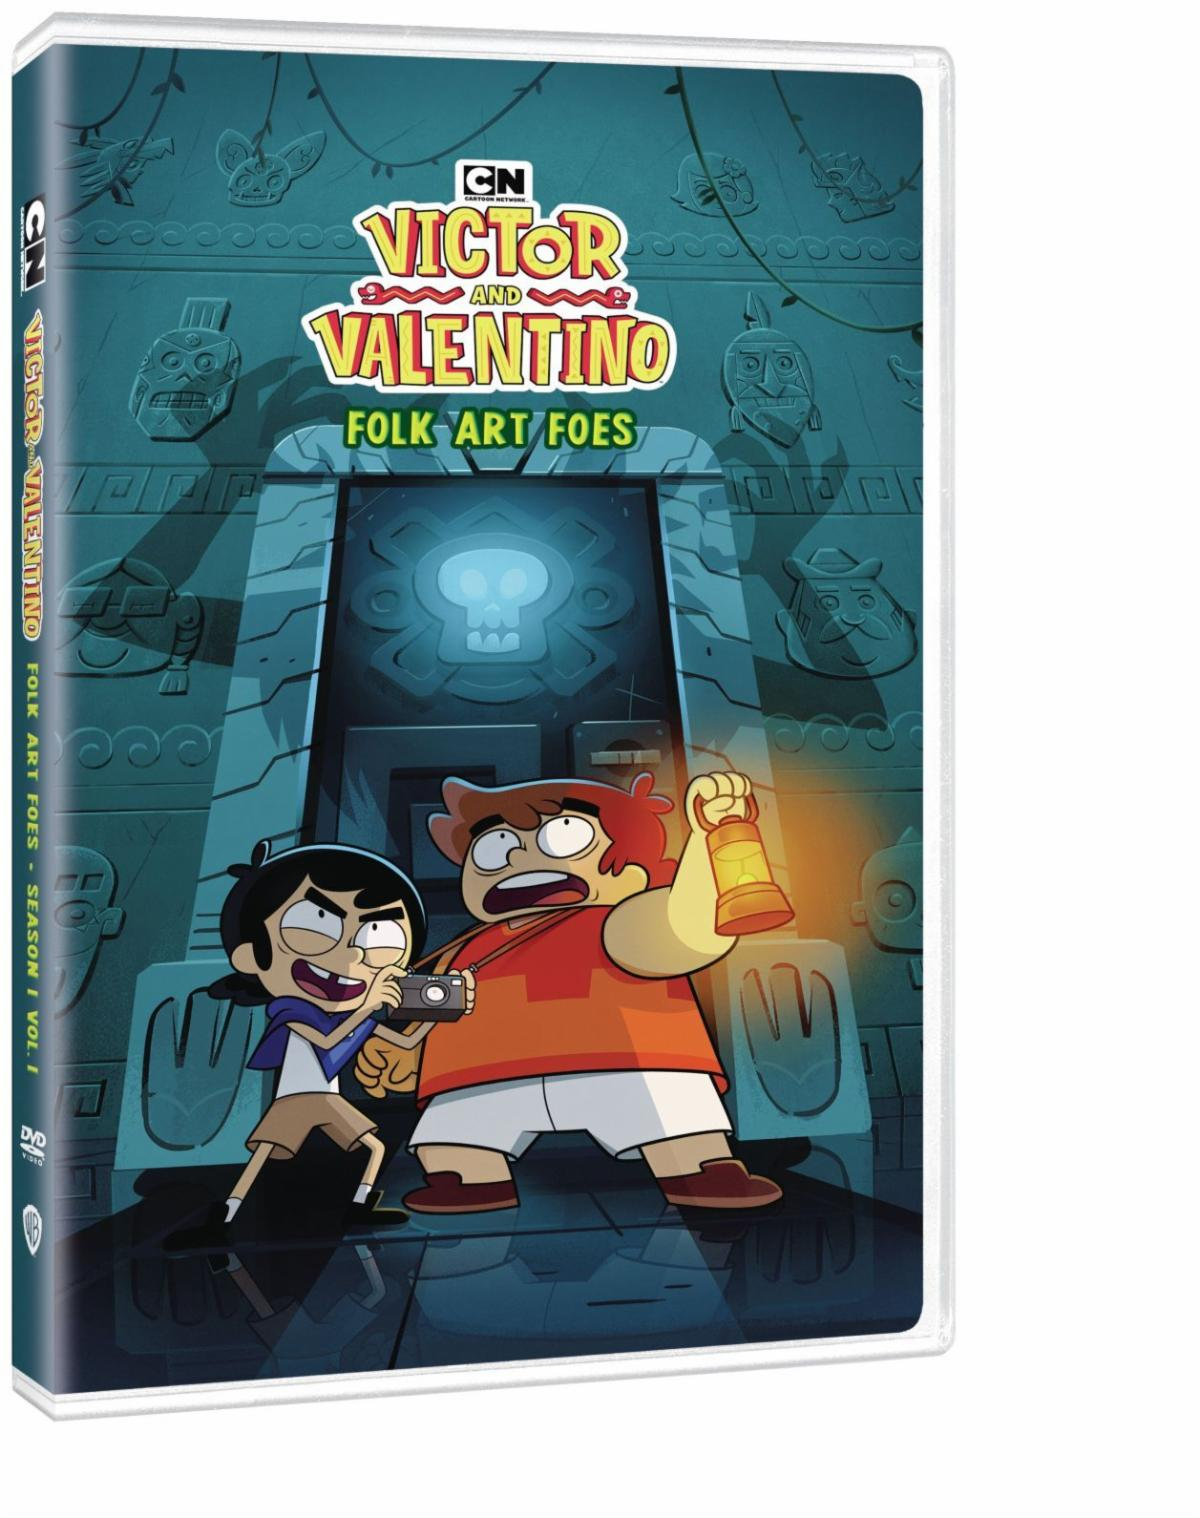 Victor and Valentino Folk Art Foes Blu-ray Review